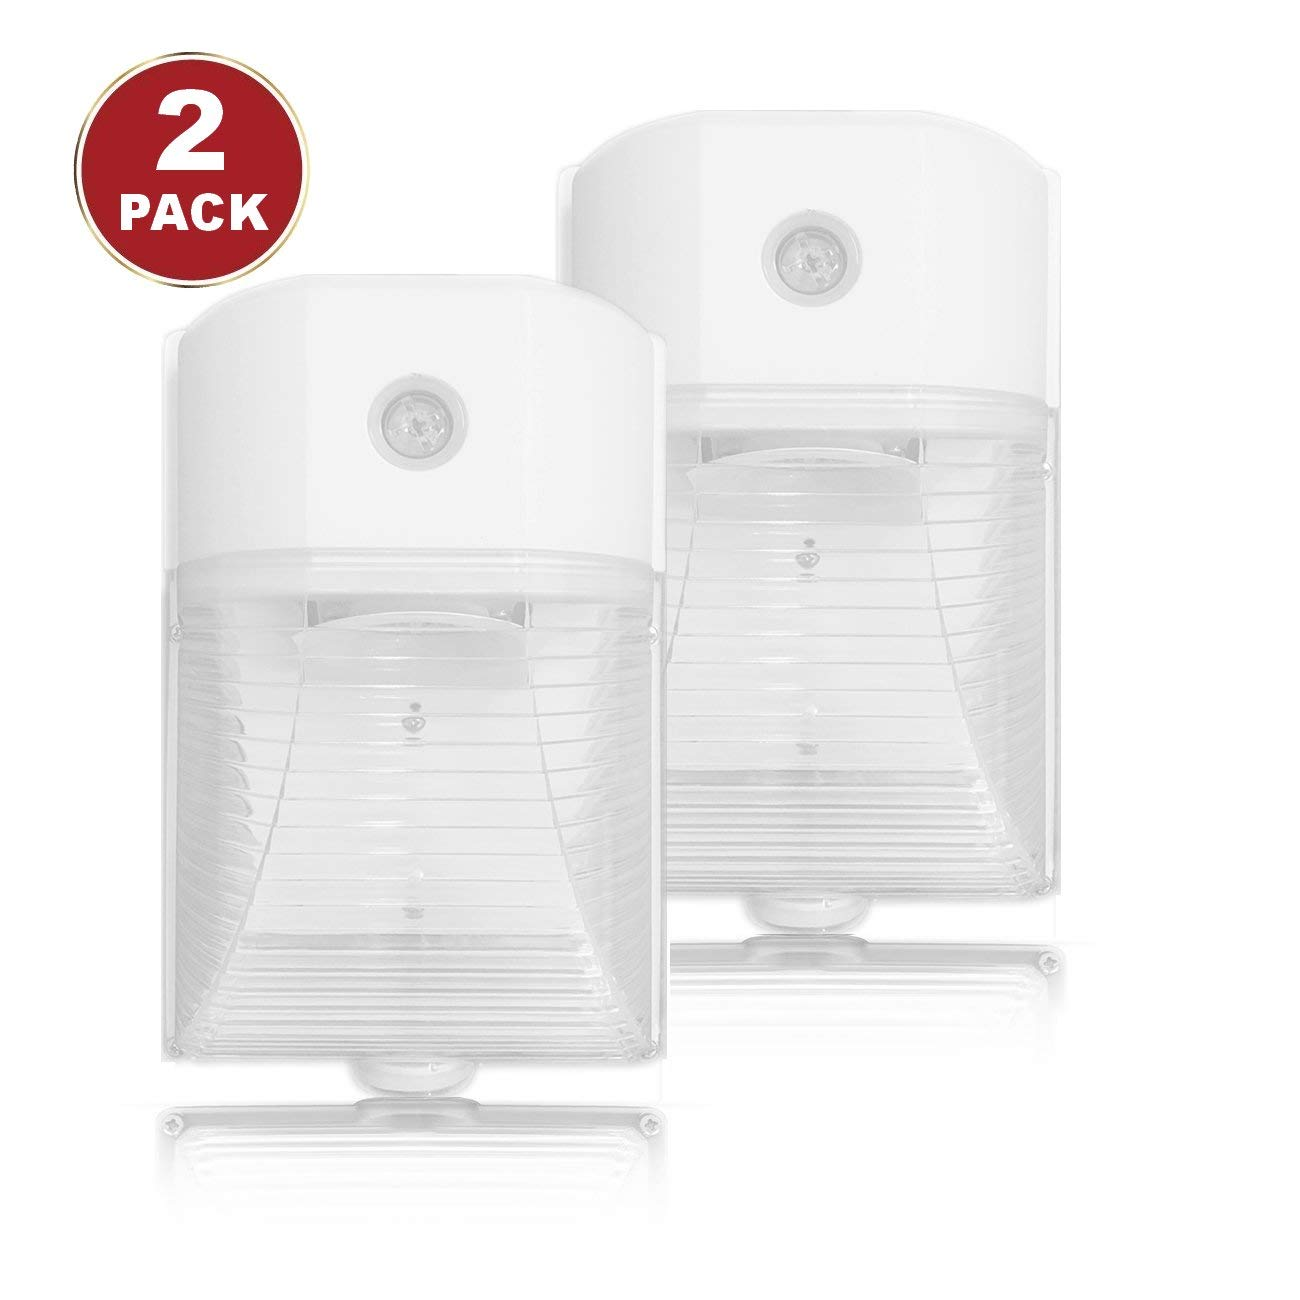 LED Wall Pack Light Amazon Coupon Code - Save 10% with promo